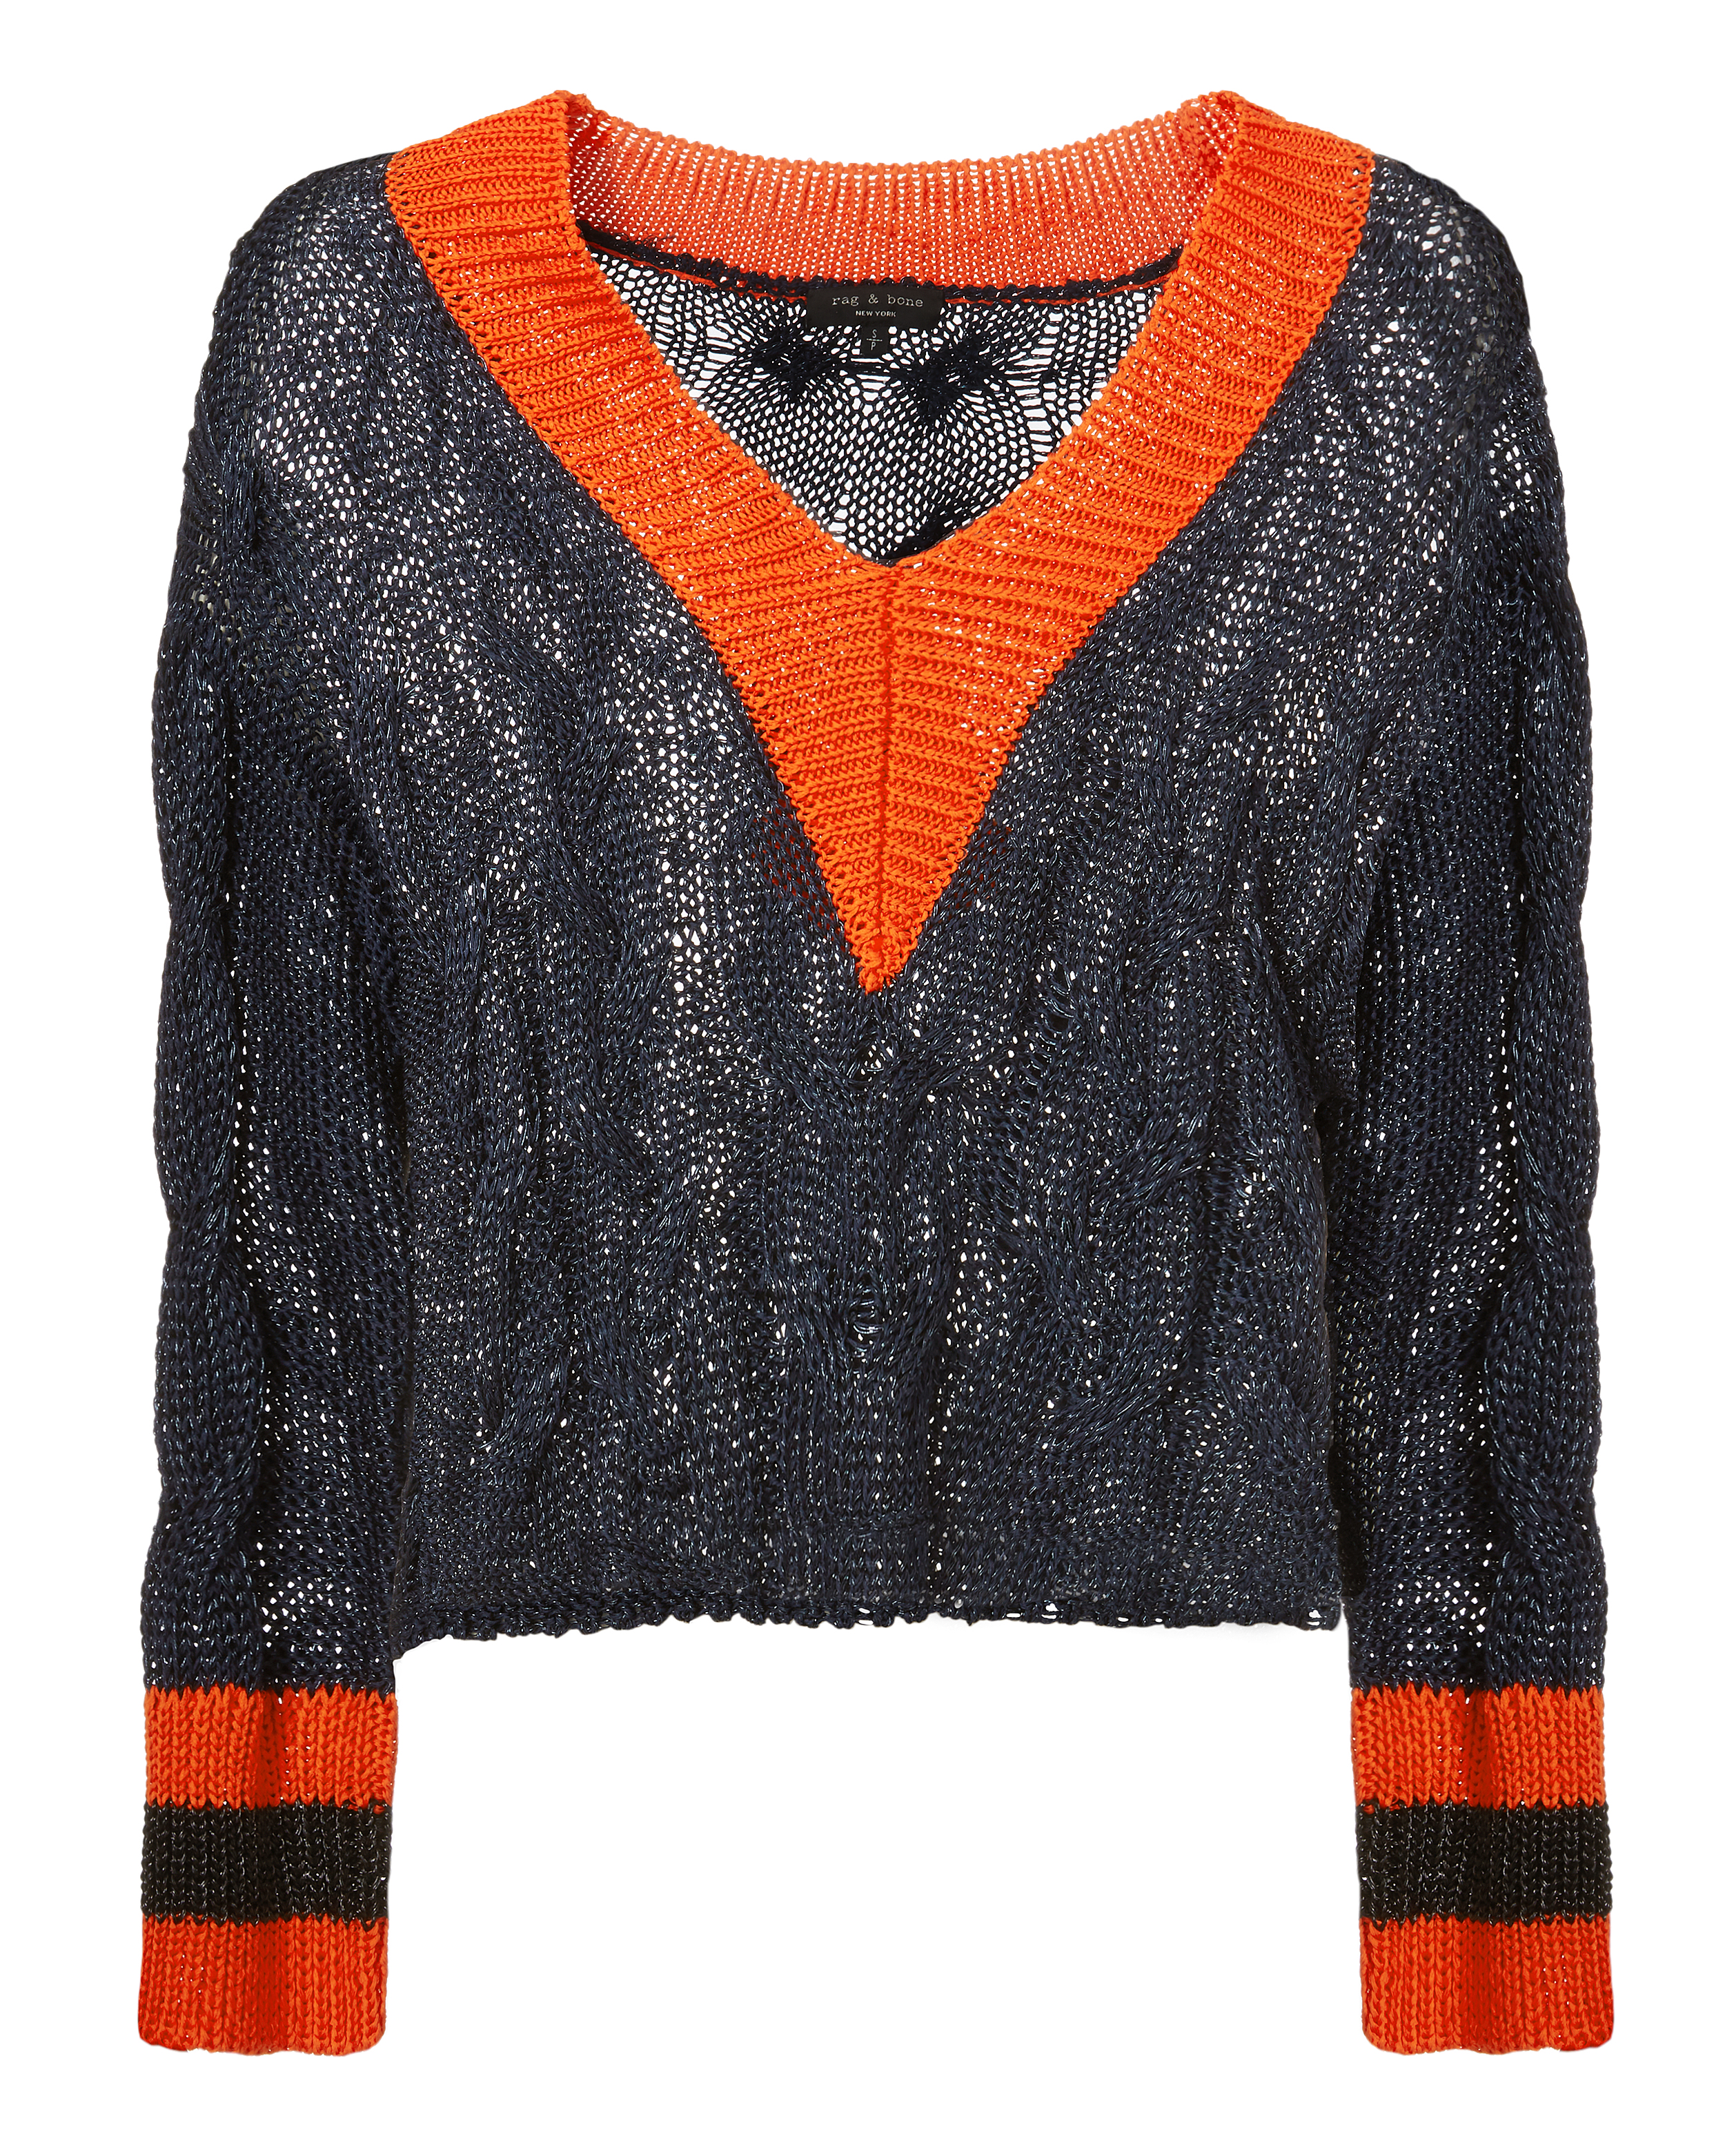 Emma Cropped Sweater by Rag & Bone